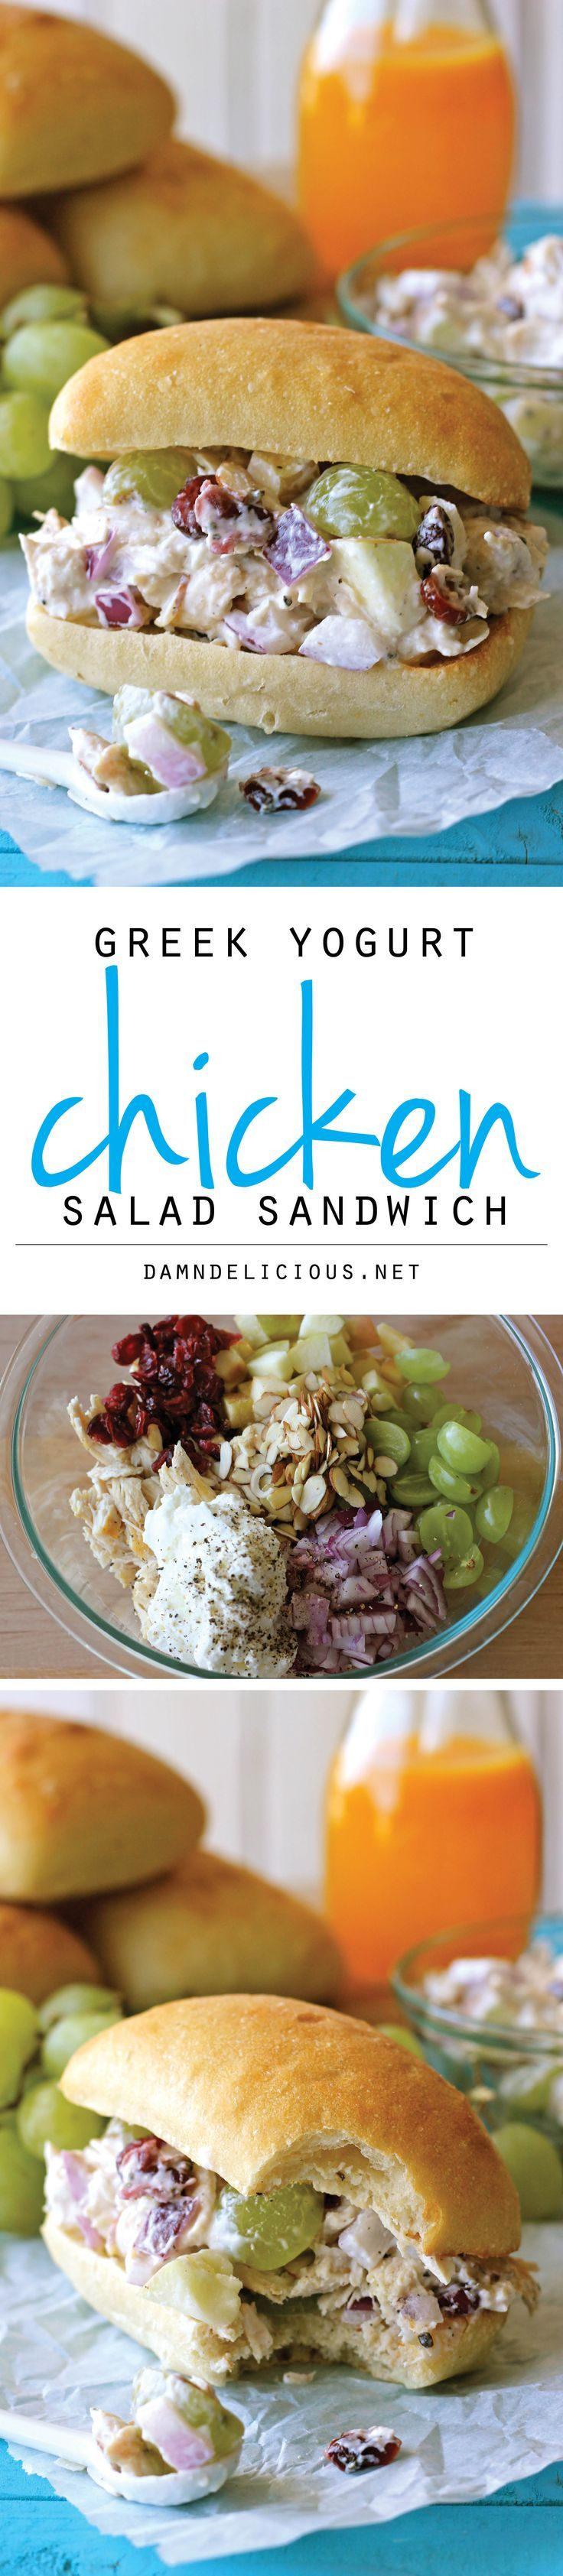 Greek Yogurt Chicken Salad Sandwich | Recipe | Salad ...